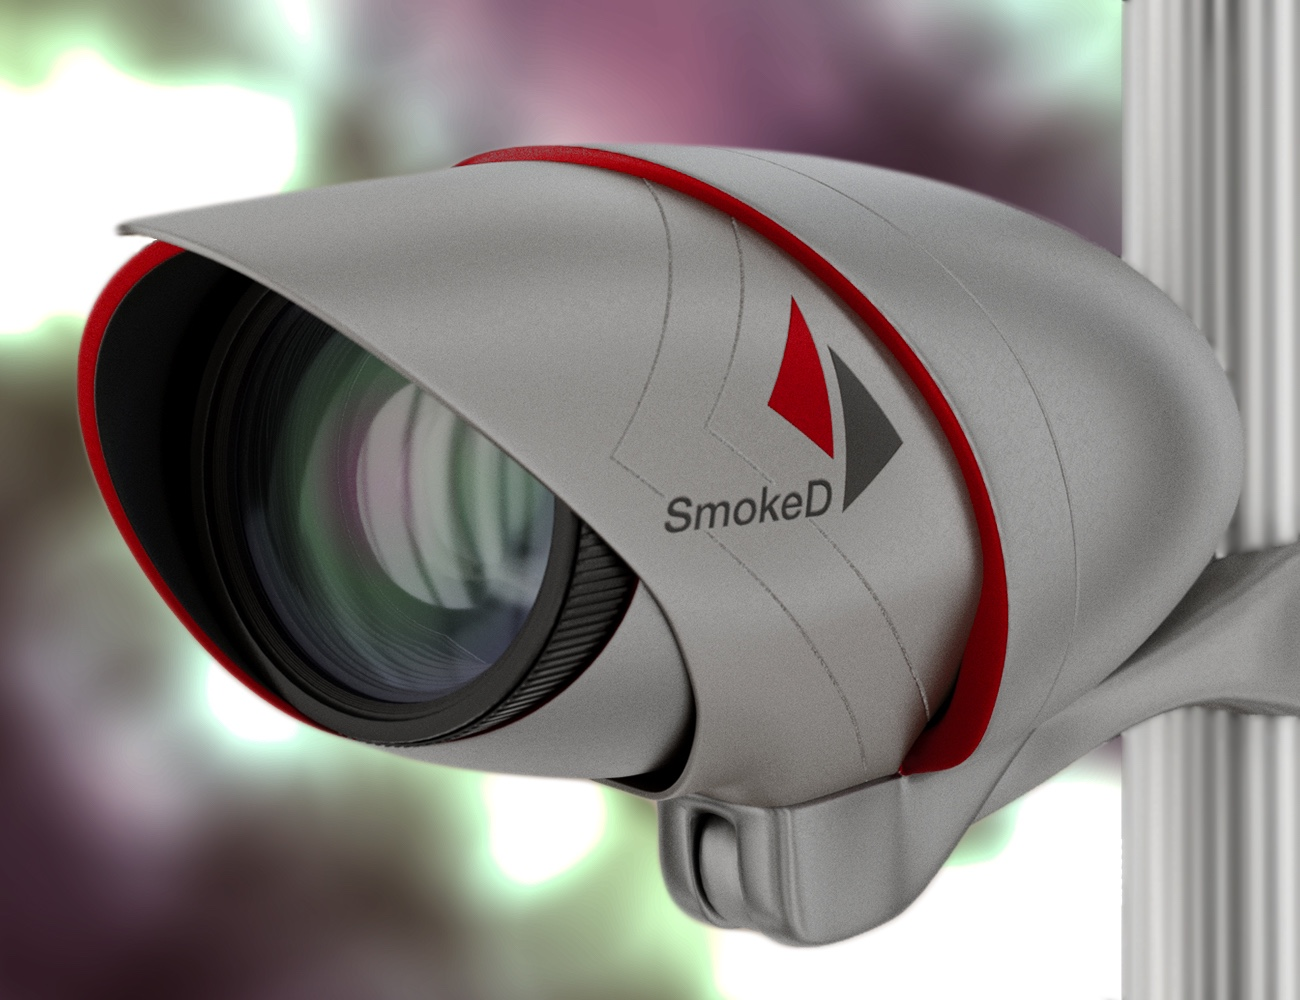 SmokeD Smart Fire Detection Camera